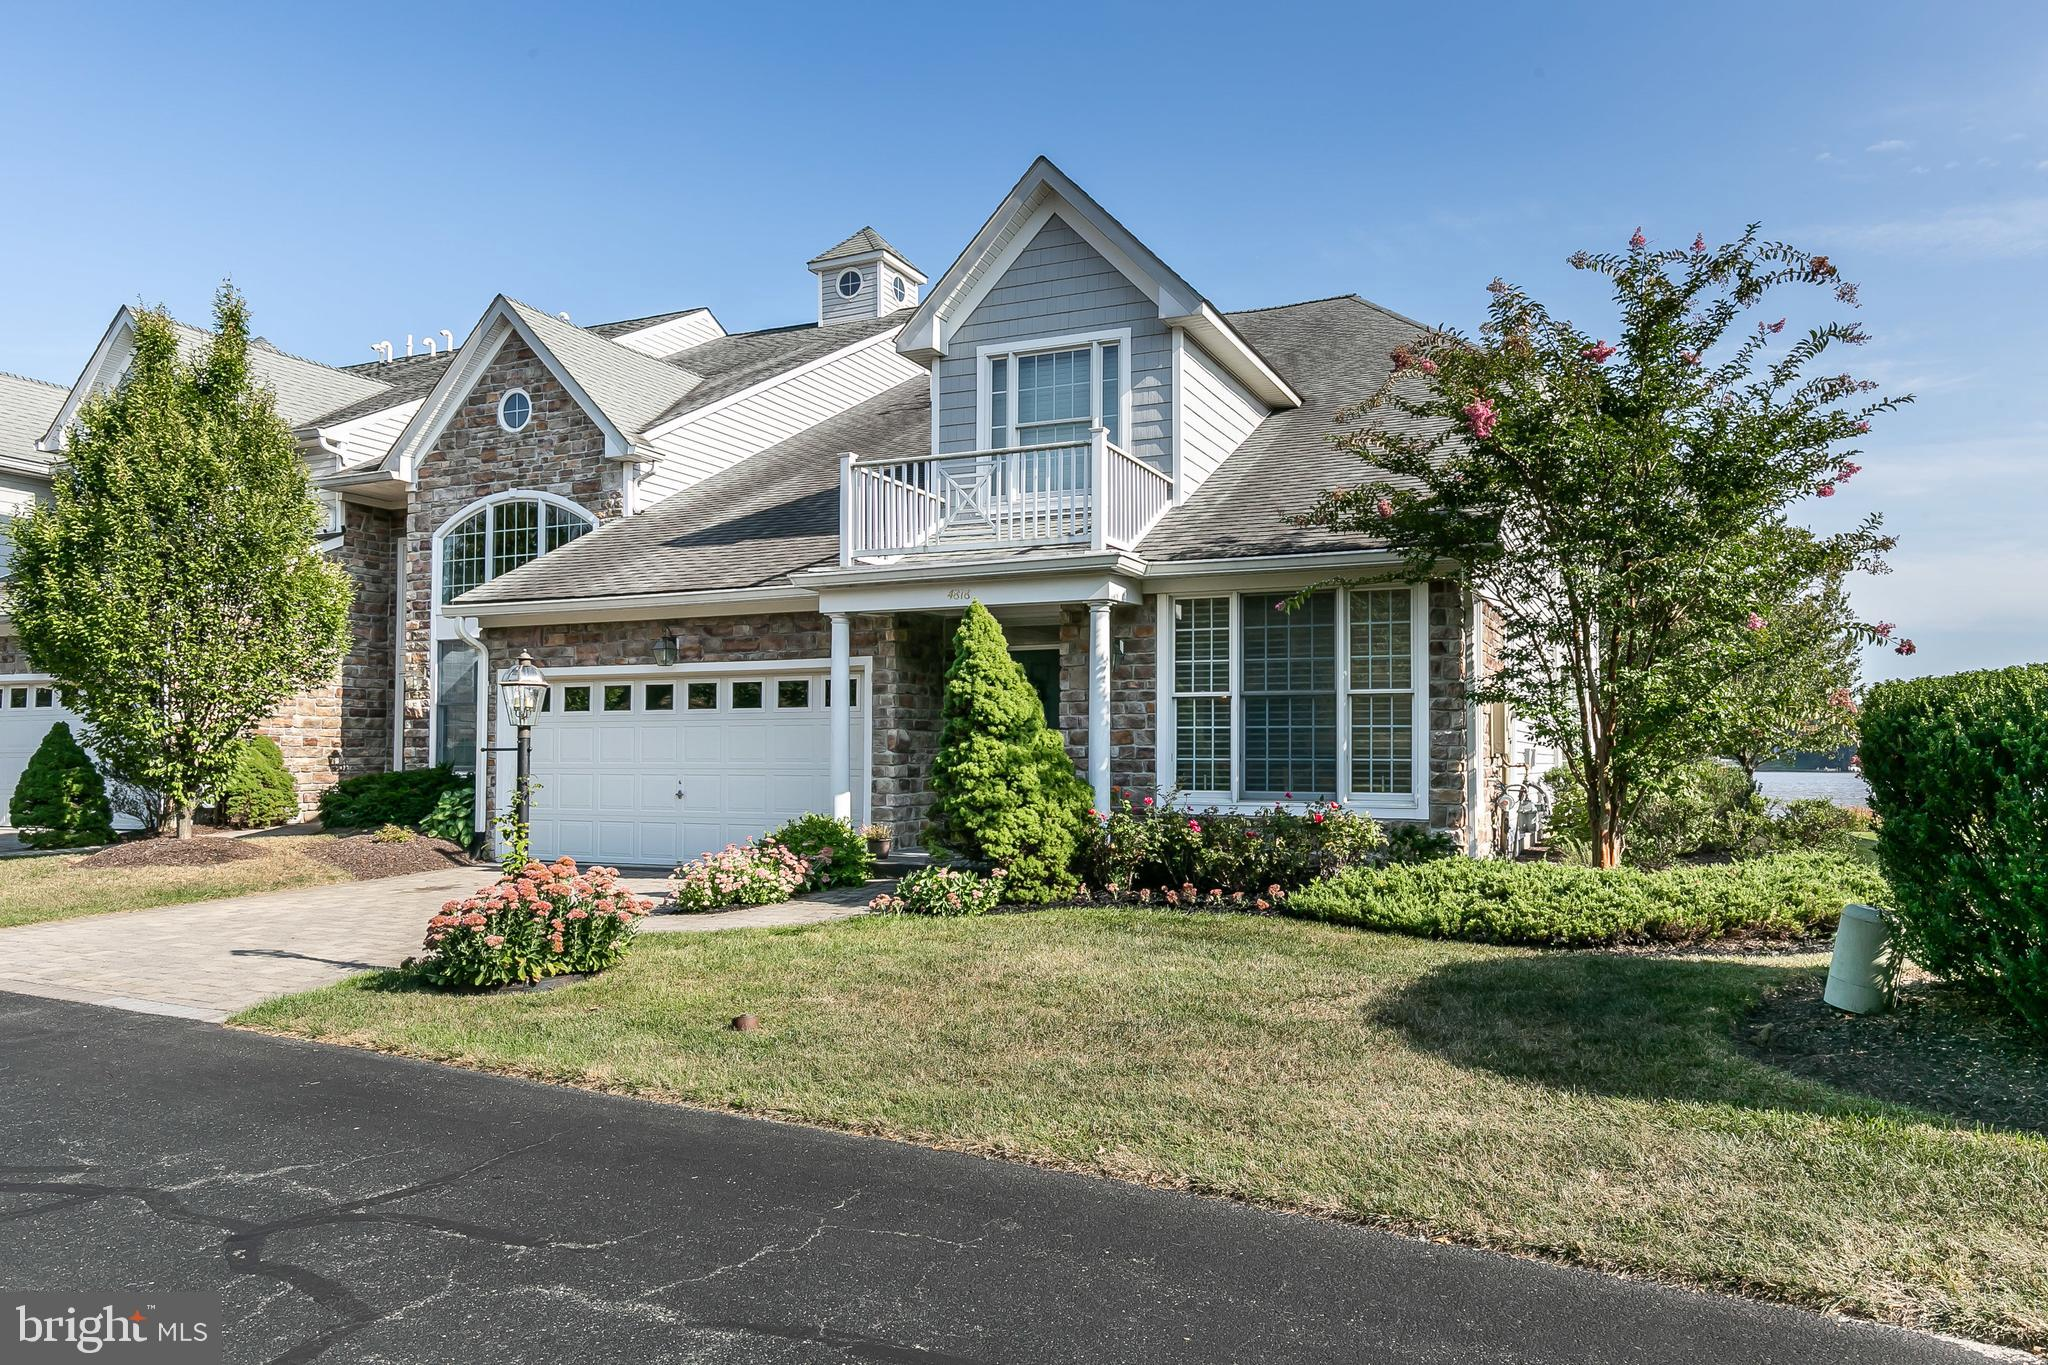 4818 WATER PARK DRIVE, BELCAMP, MD 21017